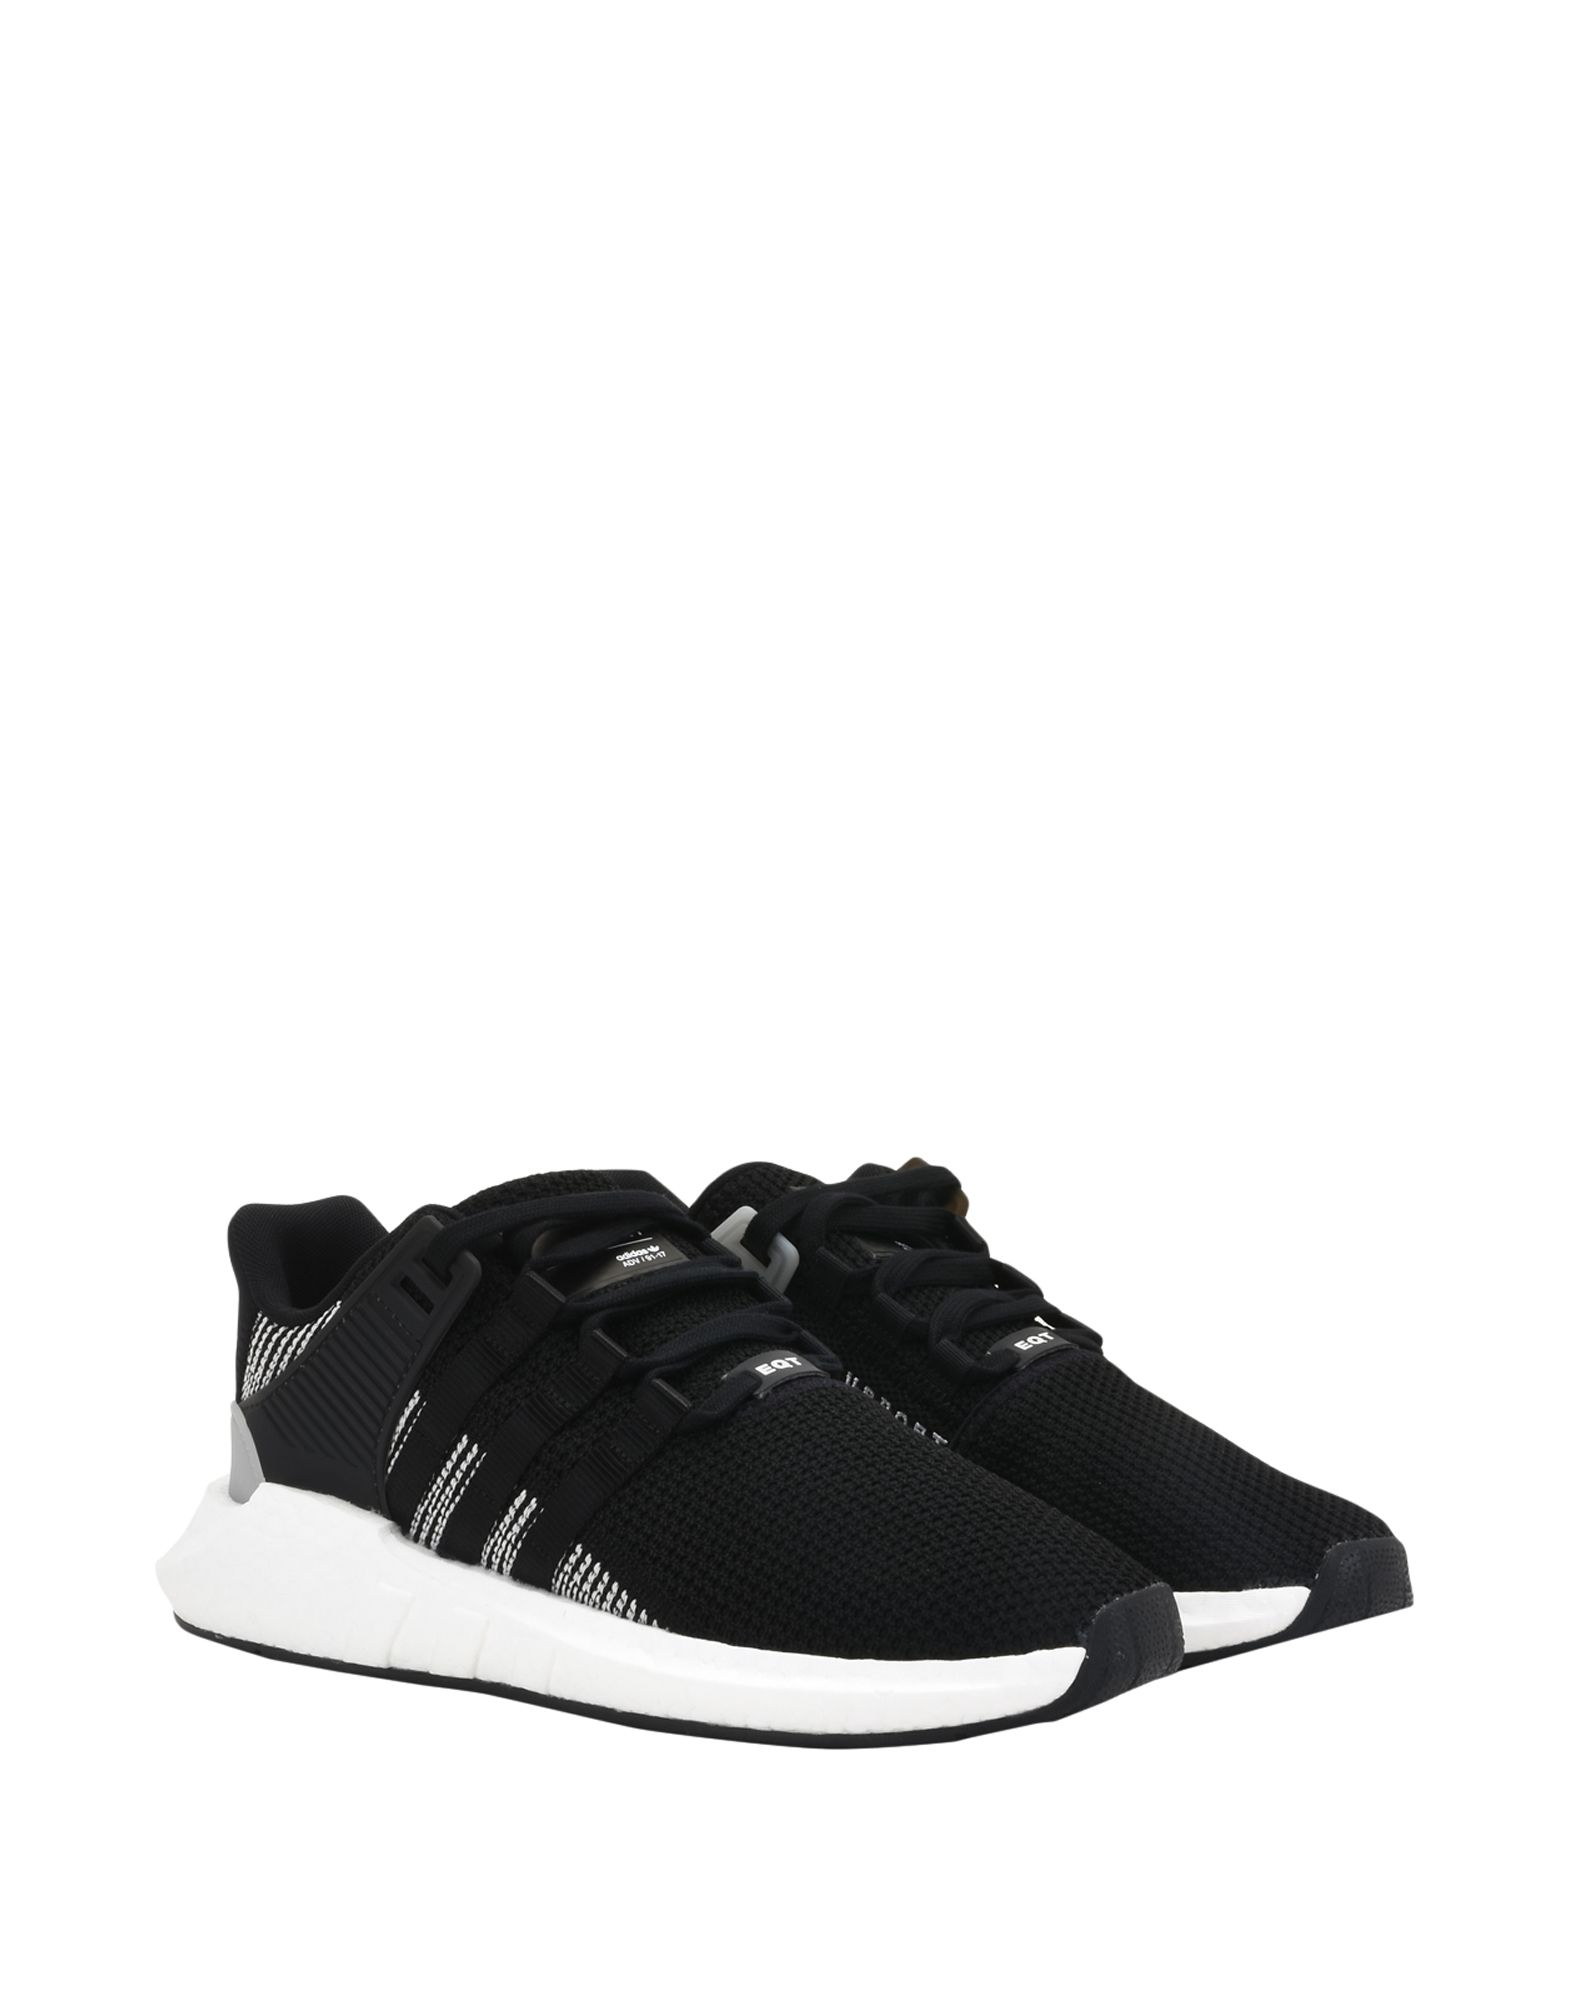 Sneakers Adidas Originals Eqt Support 93/17 - Homme - Sneakers Adidas Originals sur